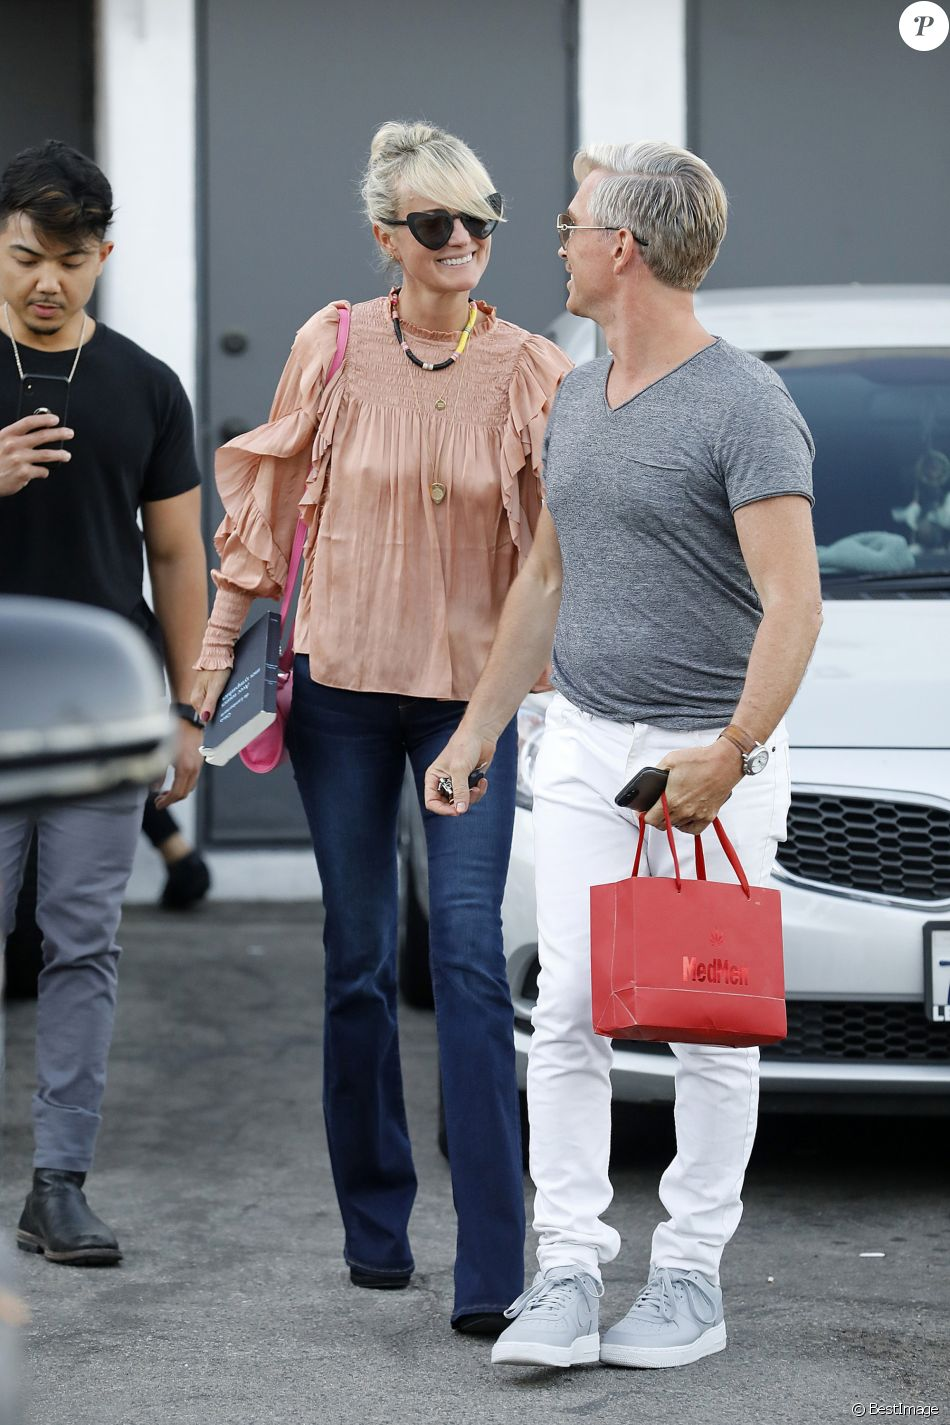 Semi-exclusif - Laeticia Hallyday à la sortie de Meche Hair Salon en compagnie de son coiffeur à Beverly Hills, Los Angeles, Californie, Etats-Unis, le 14 septembre 2018.